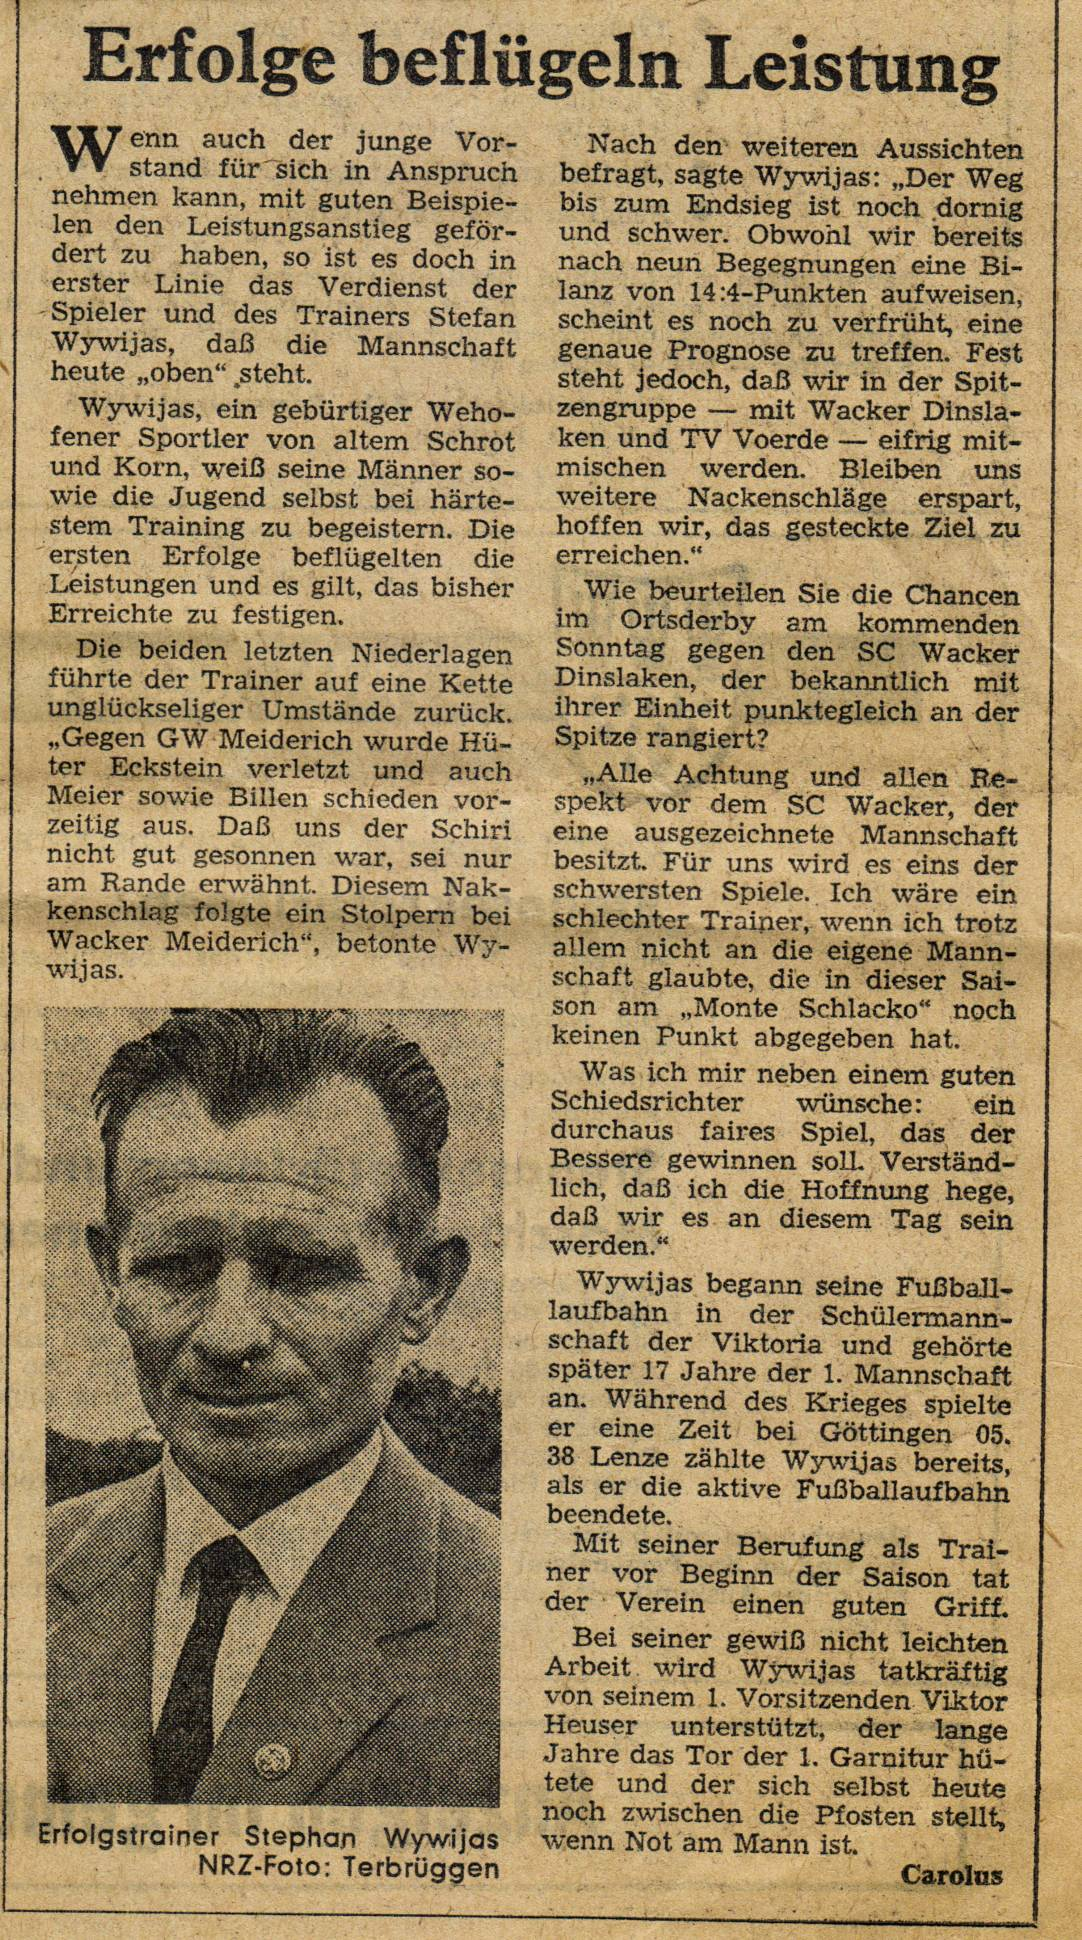 1966-zeitung-1966-Trainer-Stephan Wywijas-Erfolge-